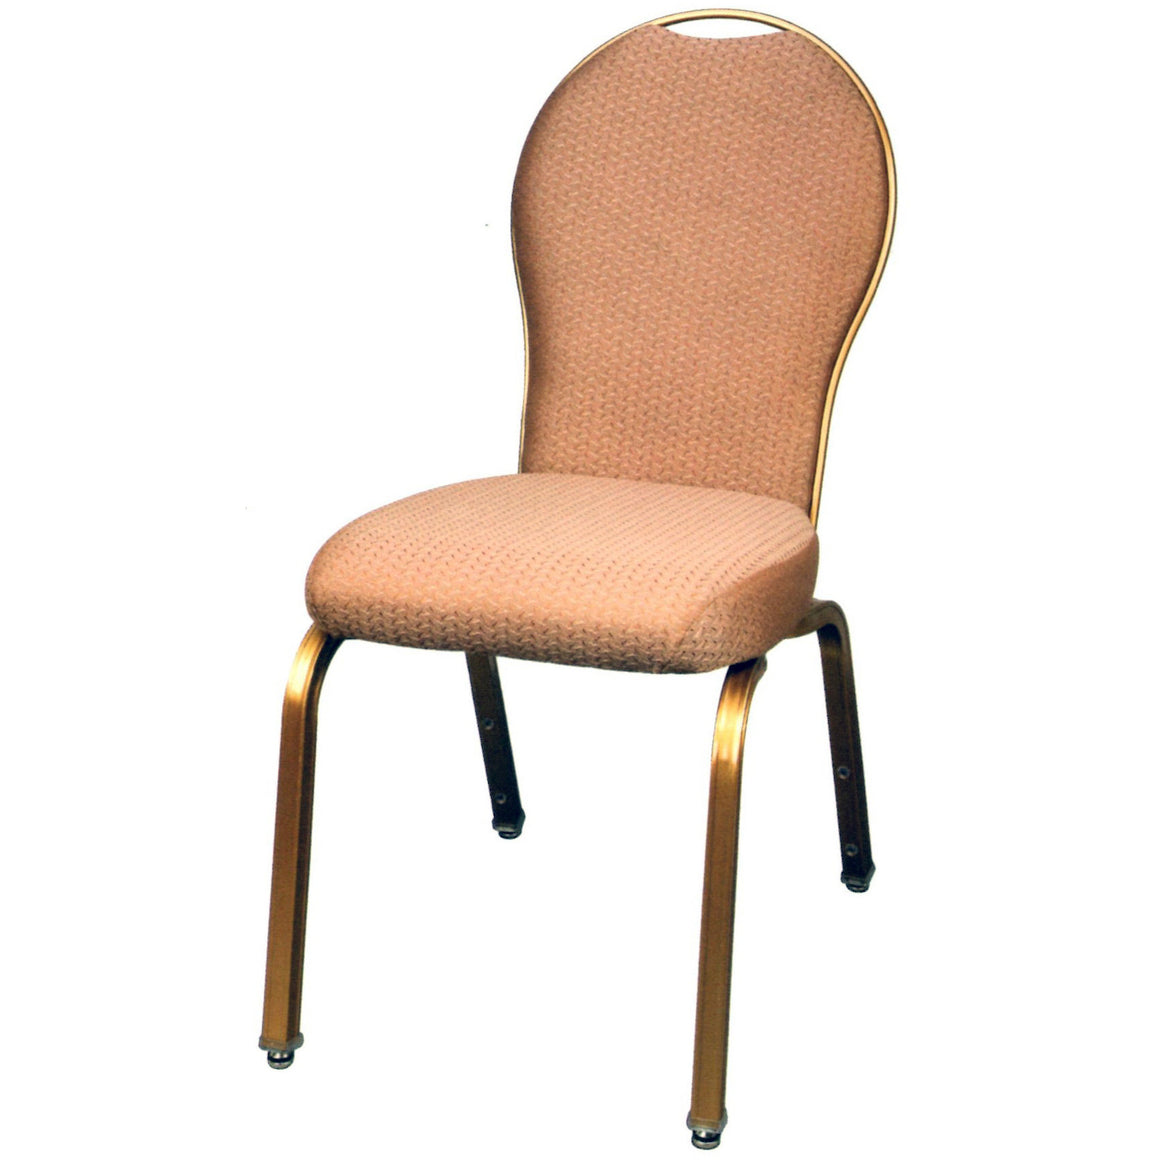 Stacking Chair 3030, Chairs, Cammac, - Cammac